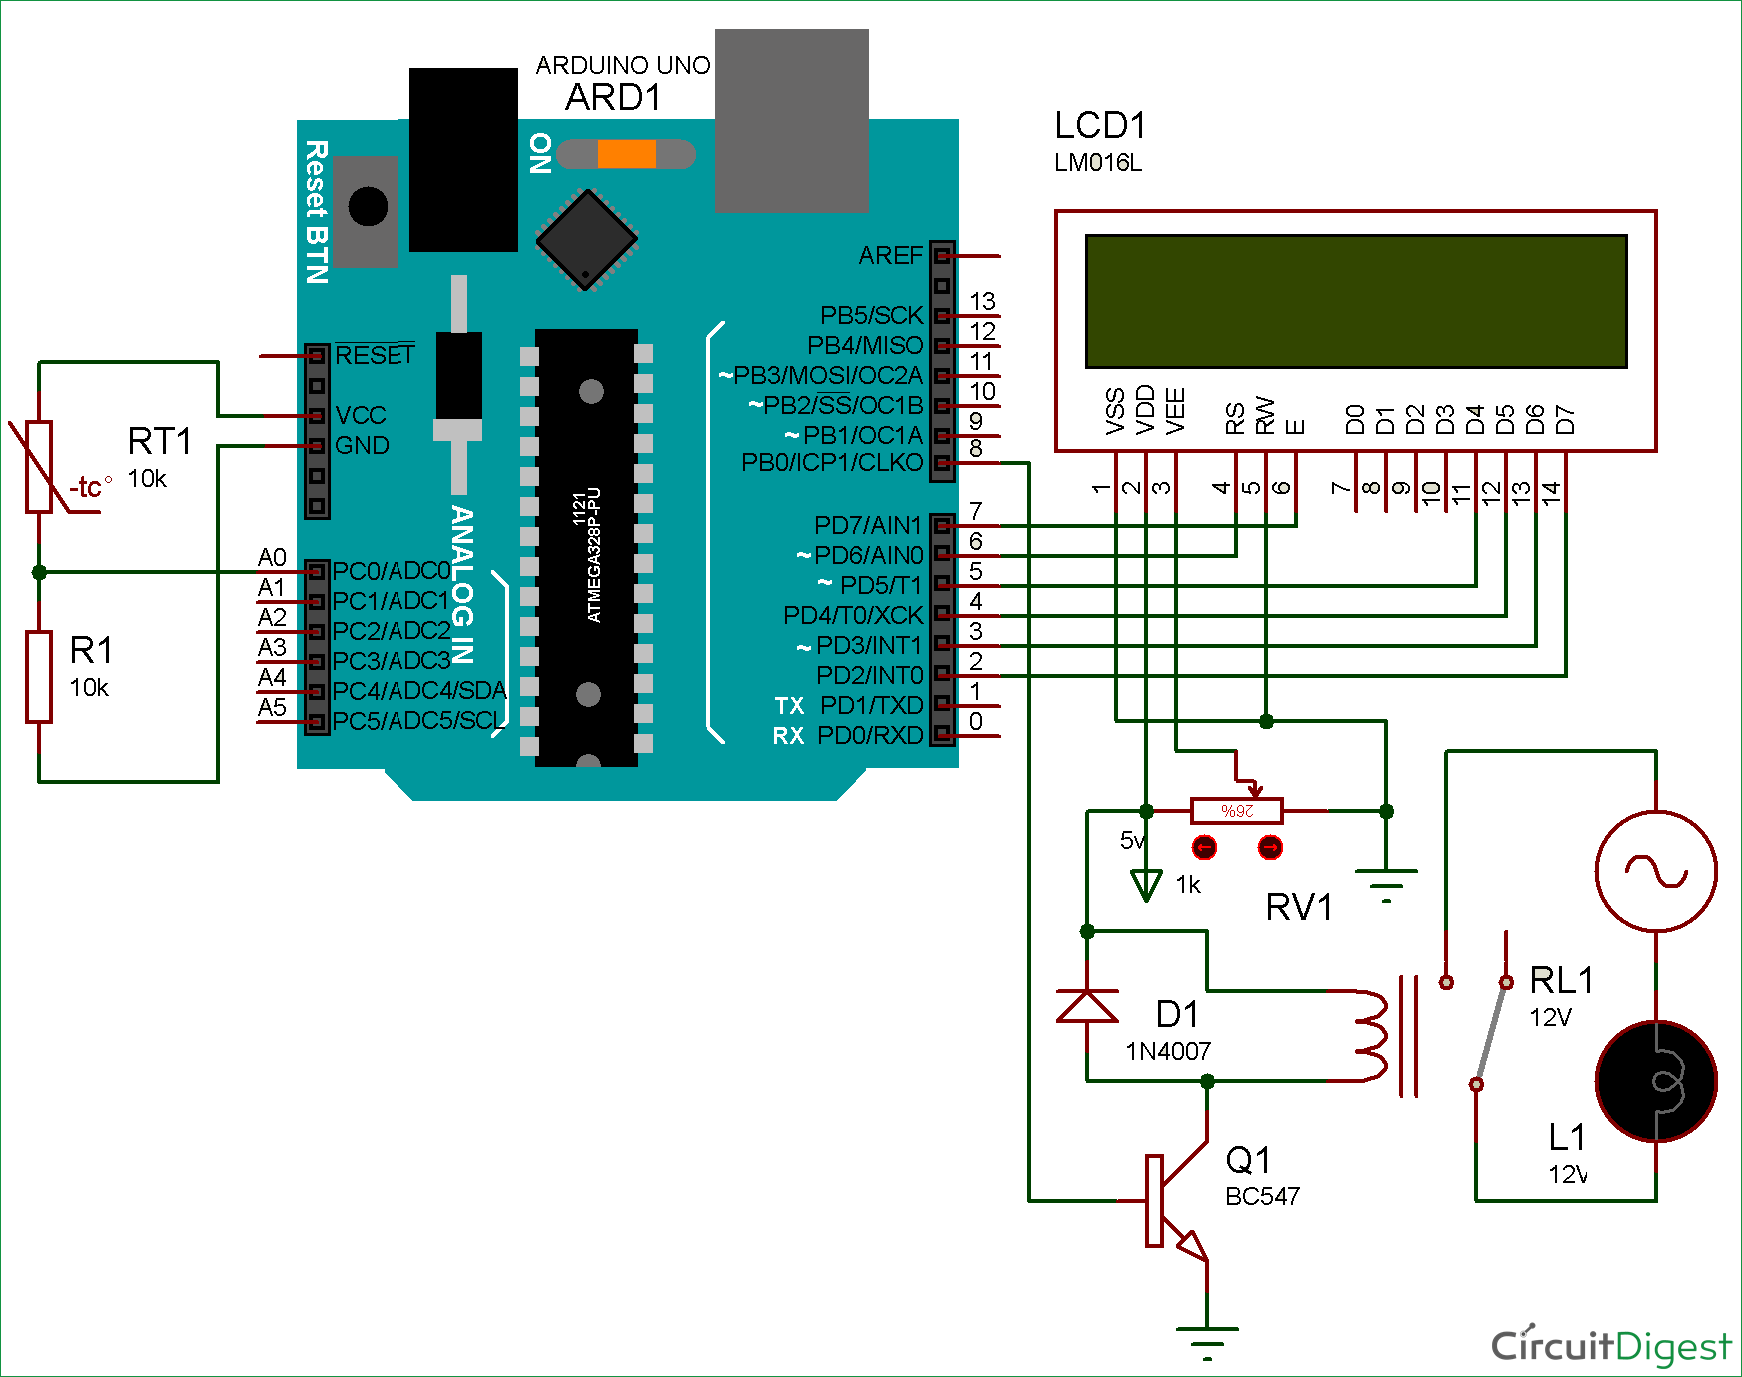 Circuit Diagram To Control Relay Using Arduino Based On Temperature Wiring Further Board As Well 2